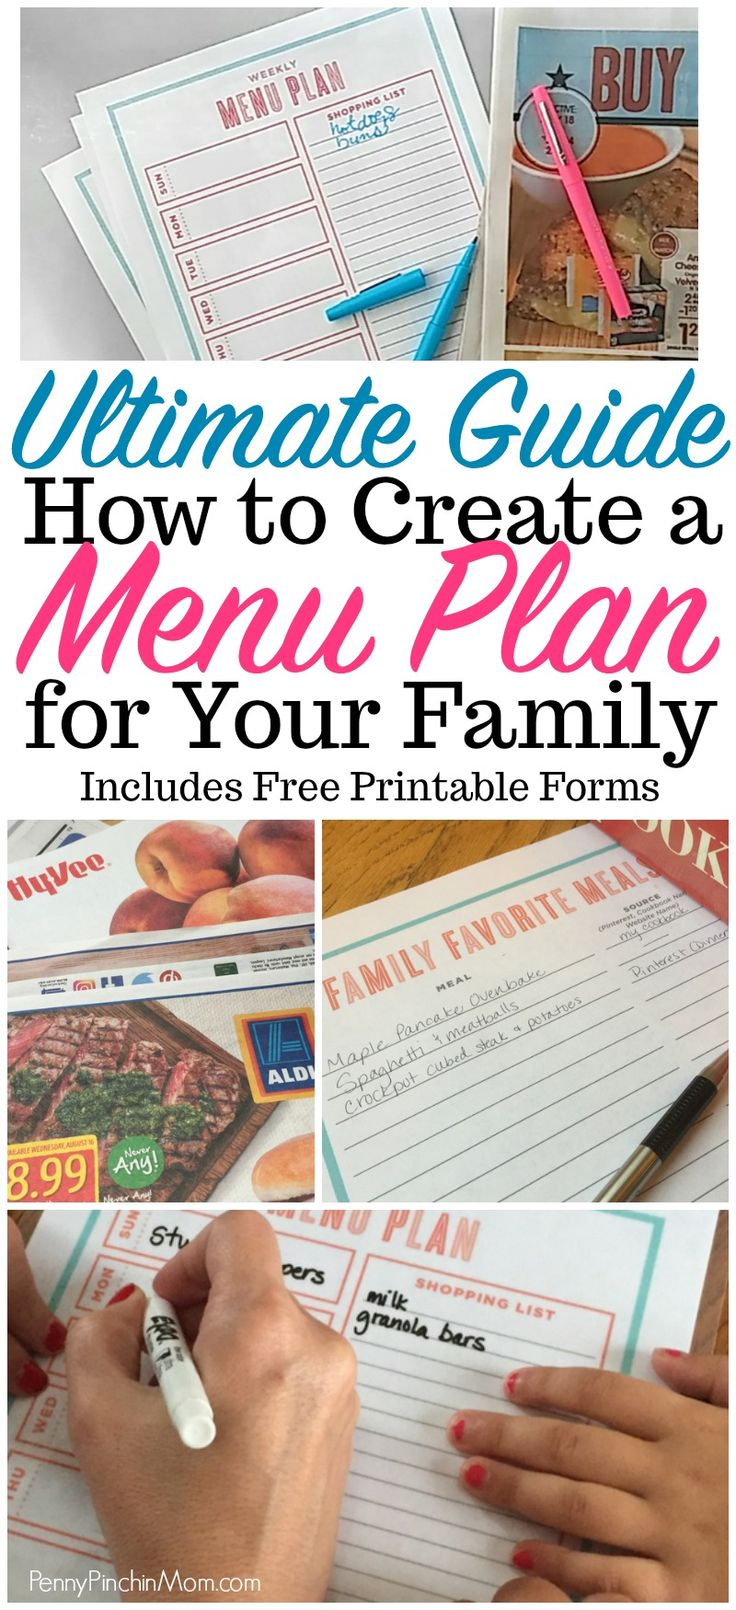 how to create a menu plan for your family  Menu planning forms | help menu planning | how to start with a menu plan